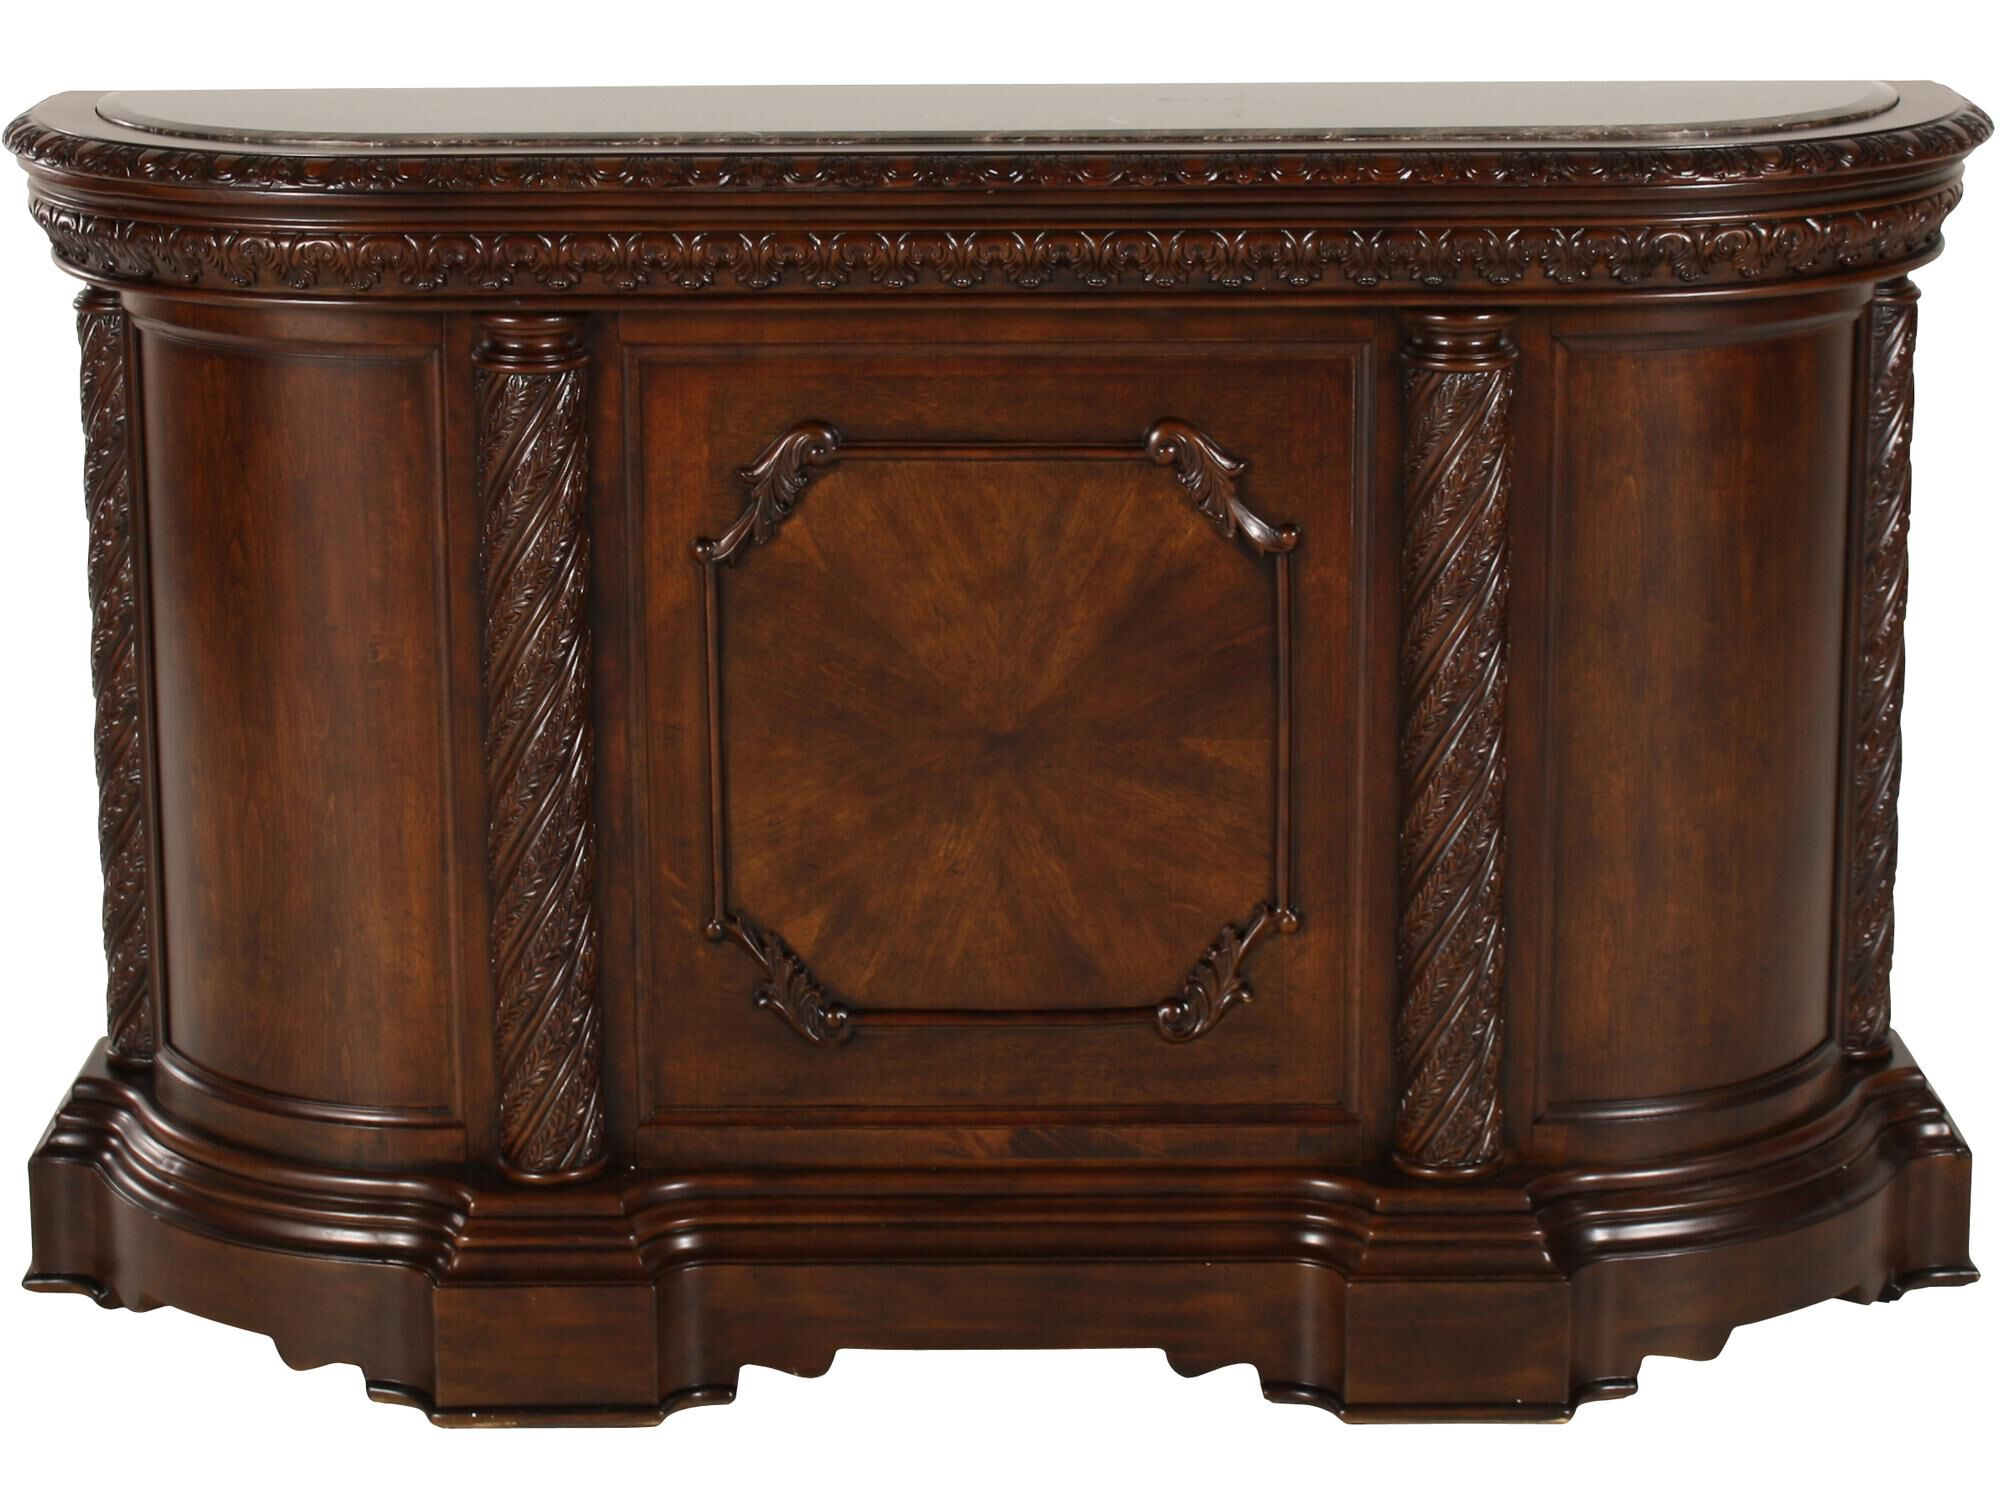 Charmant Images Traditional 42u0026quot; Bar With Pilastered Columns In Dark Brown  Traditional 42u0026quot; Bar With Pilastered Columns In Dark Brown